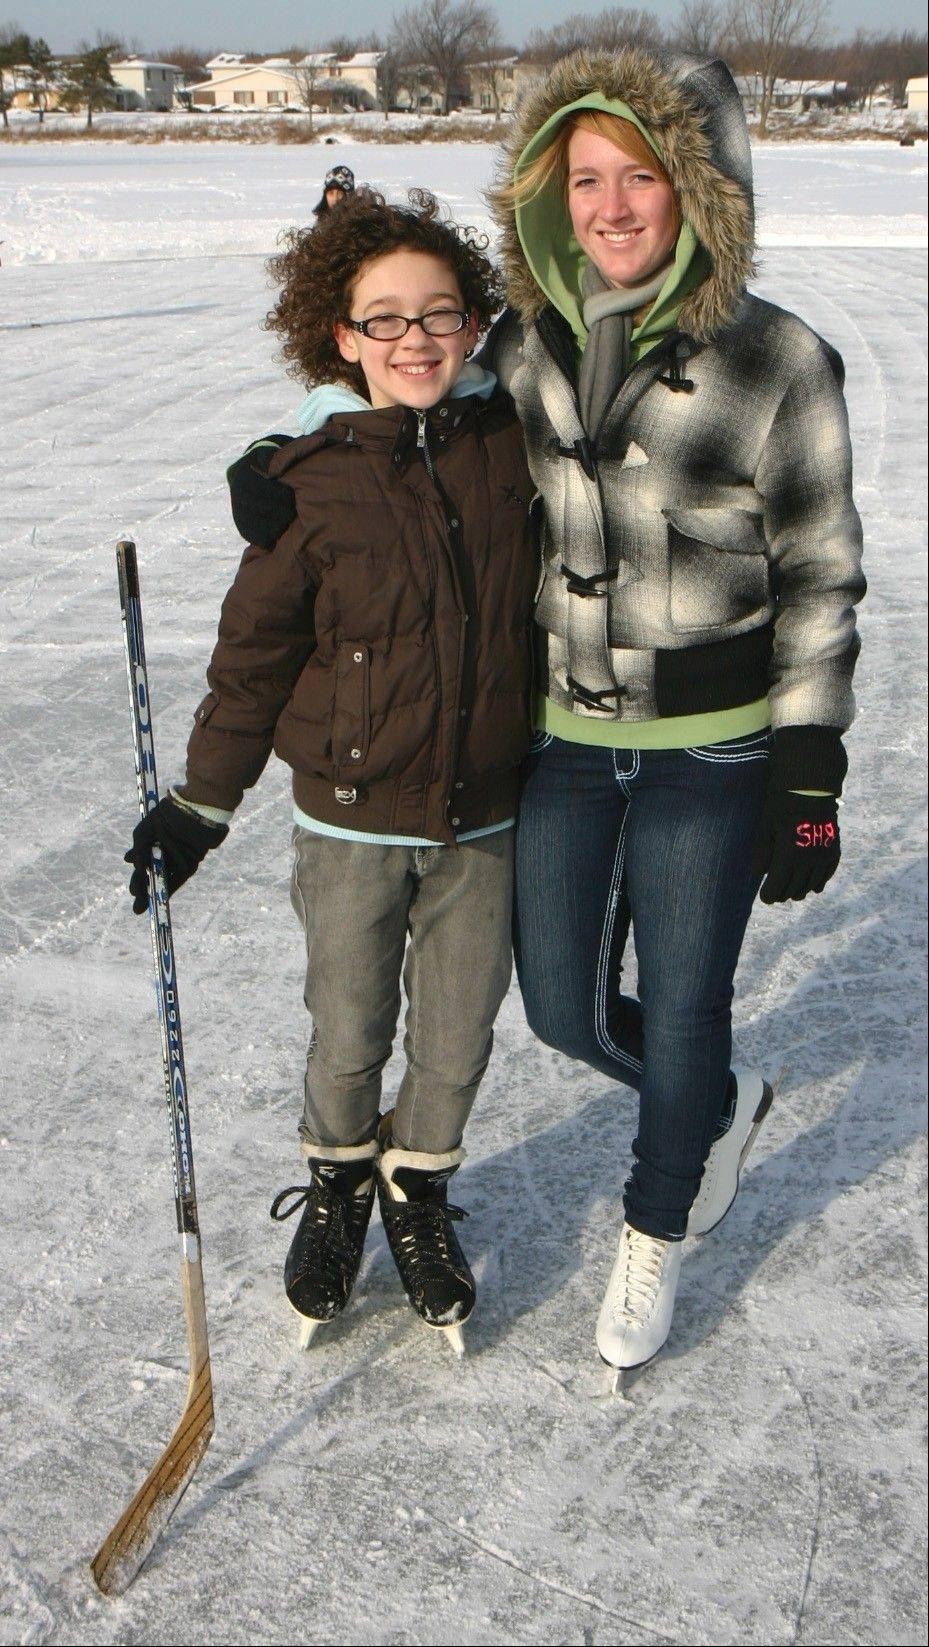 Schaumburg Park District's Timbercrest Park is now open for ice skating. Hit the rink for some outdoor fun and exercise.